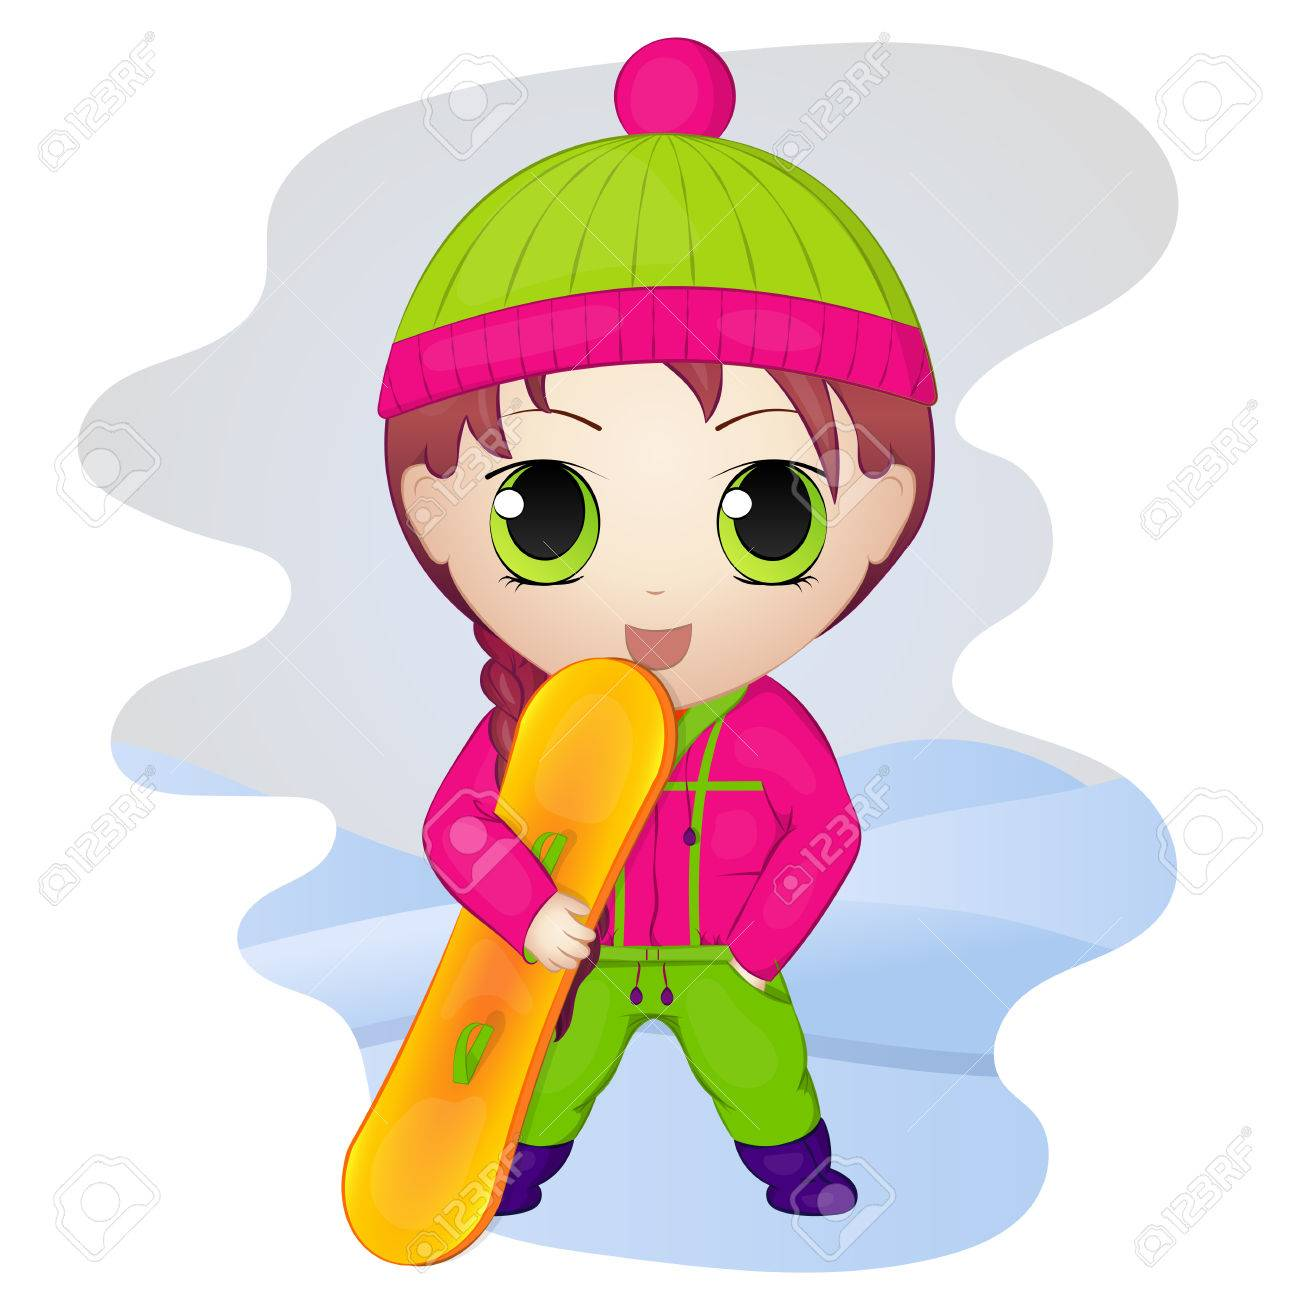 Cute anime chibi little girl with snowboard simple cartoon style vector illustration new